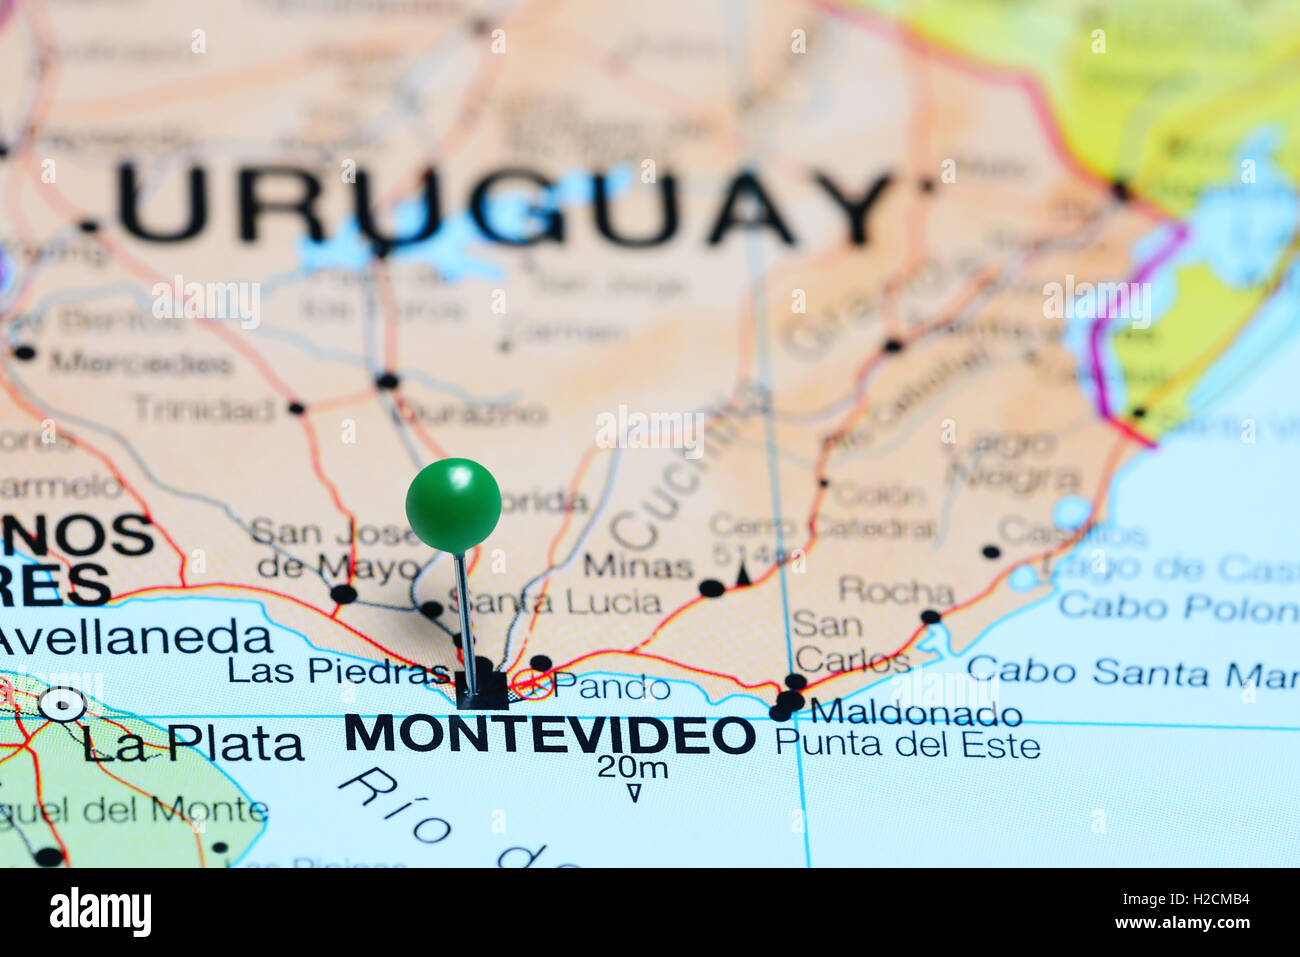 Image of: Montevideo Pinned On A Map Of Uruguay Stock Photo Alamy